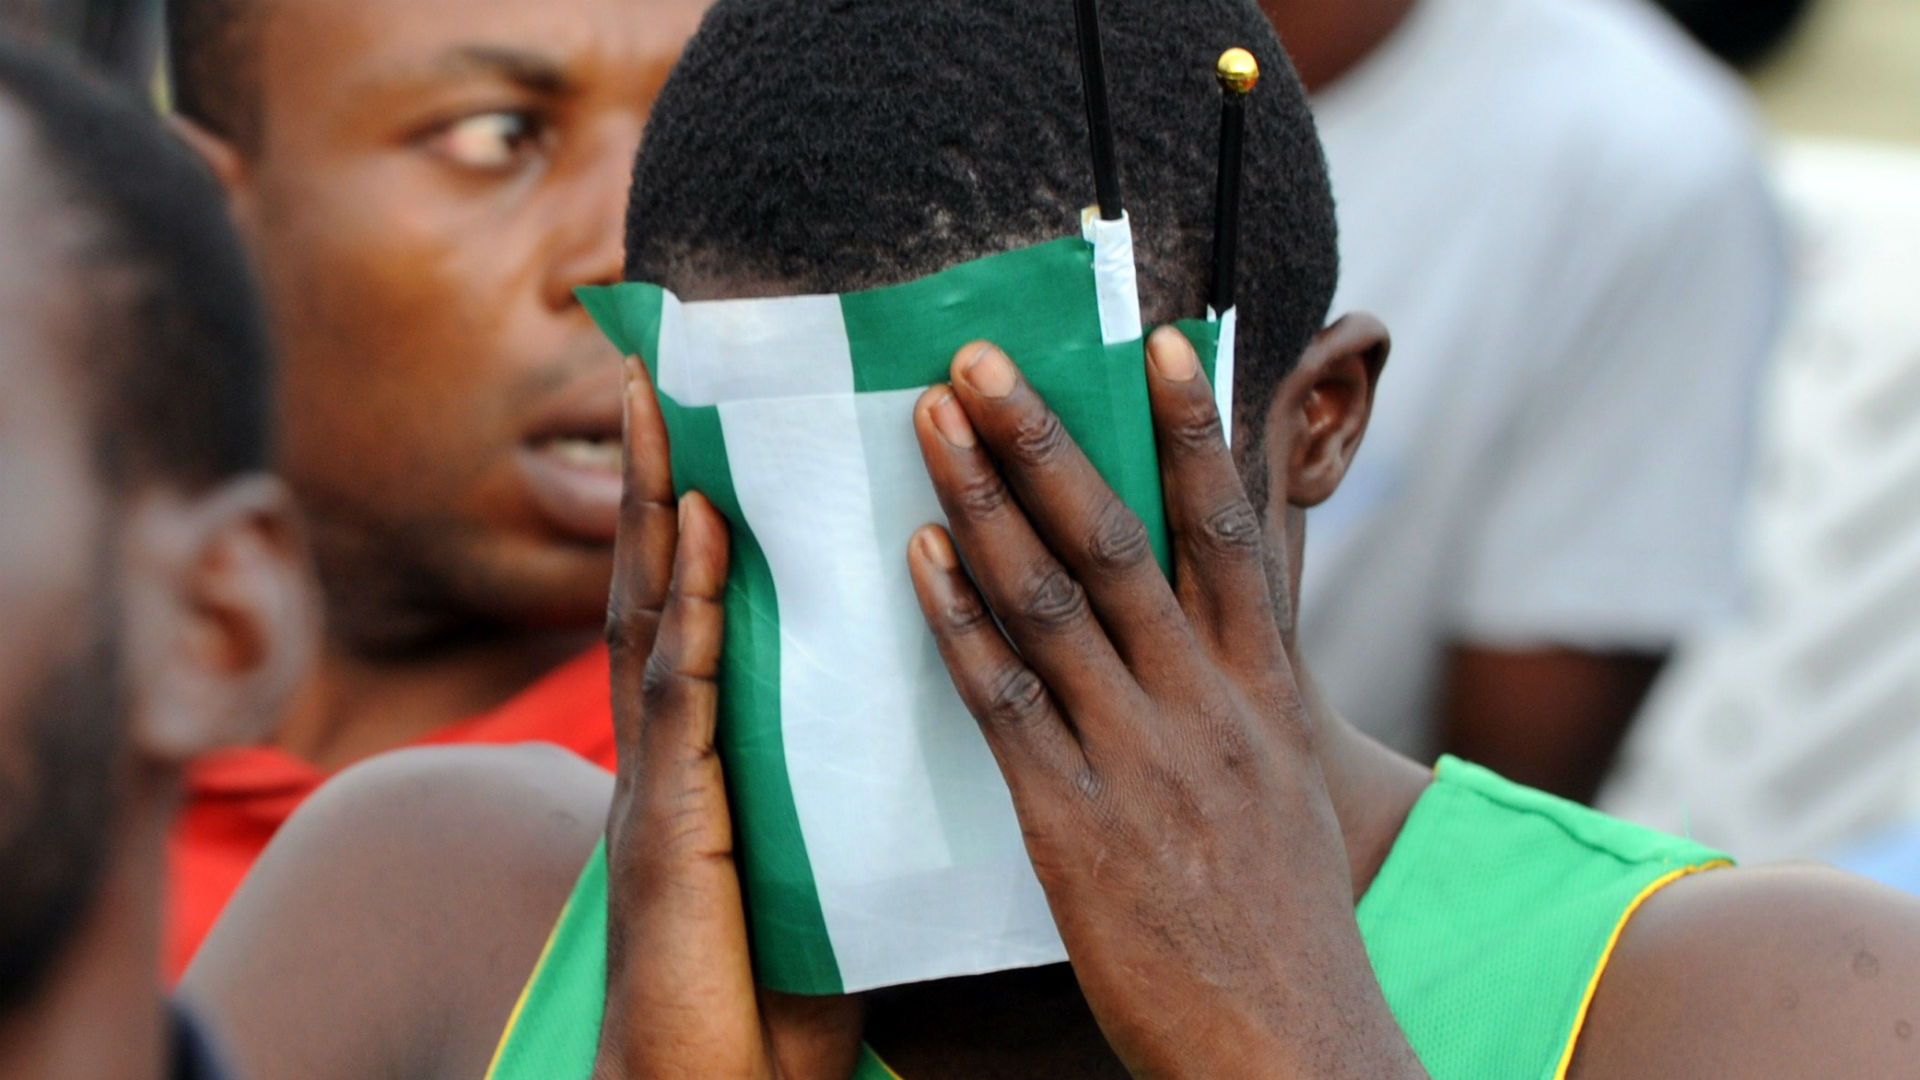 Nigeria football fans electrocuted in viewing centre tragedy